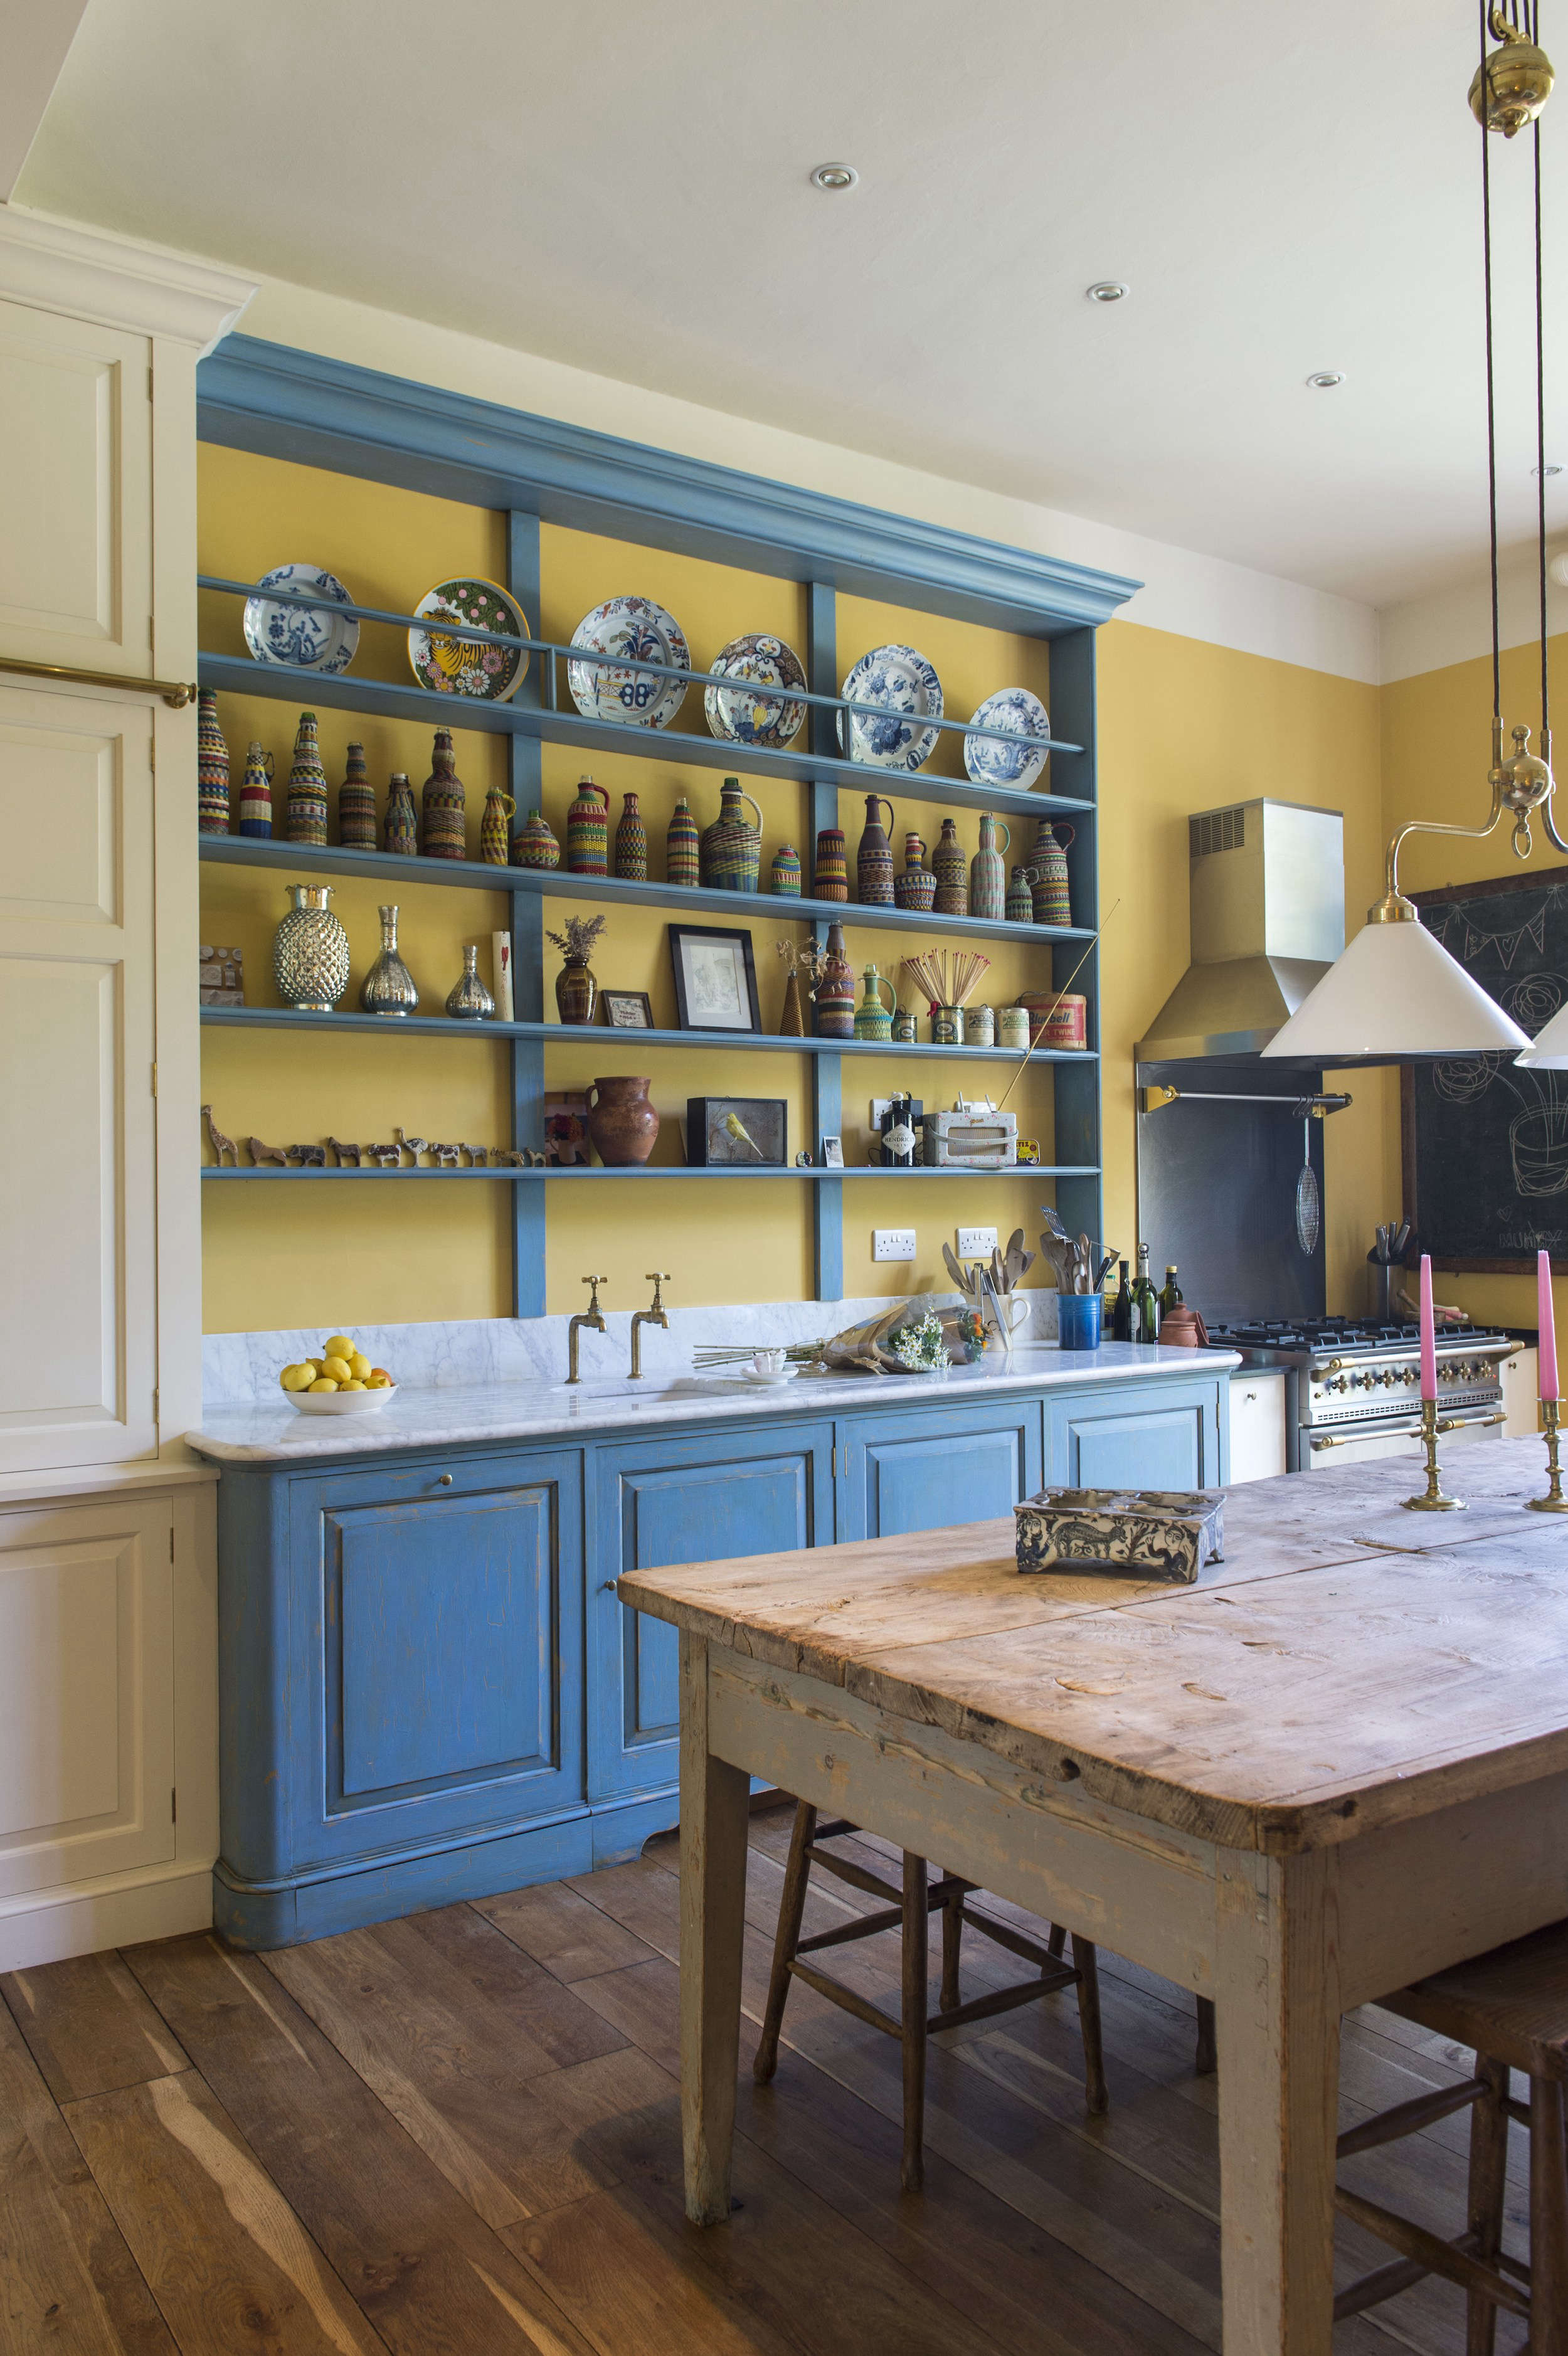 Max Rolitt UK Colorful Kitchen with Wood Table and Blue Cabinets